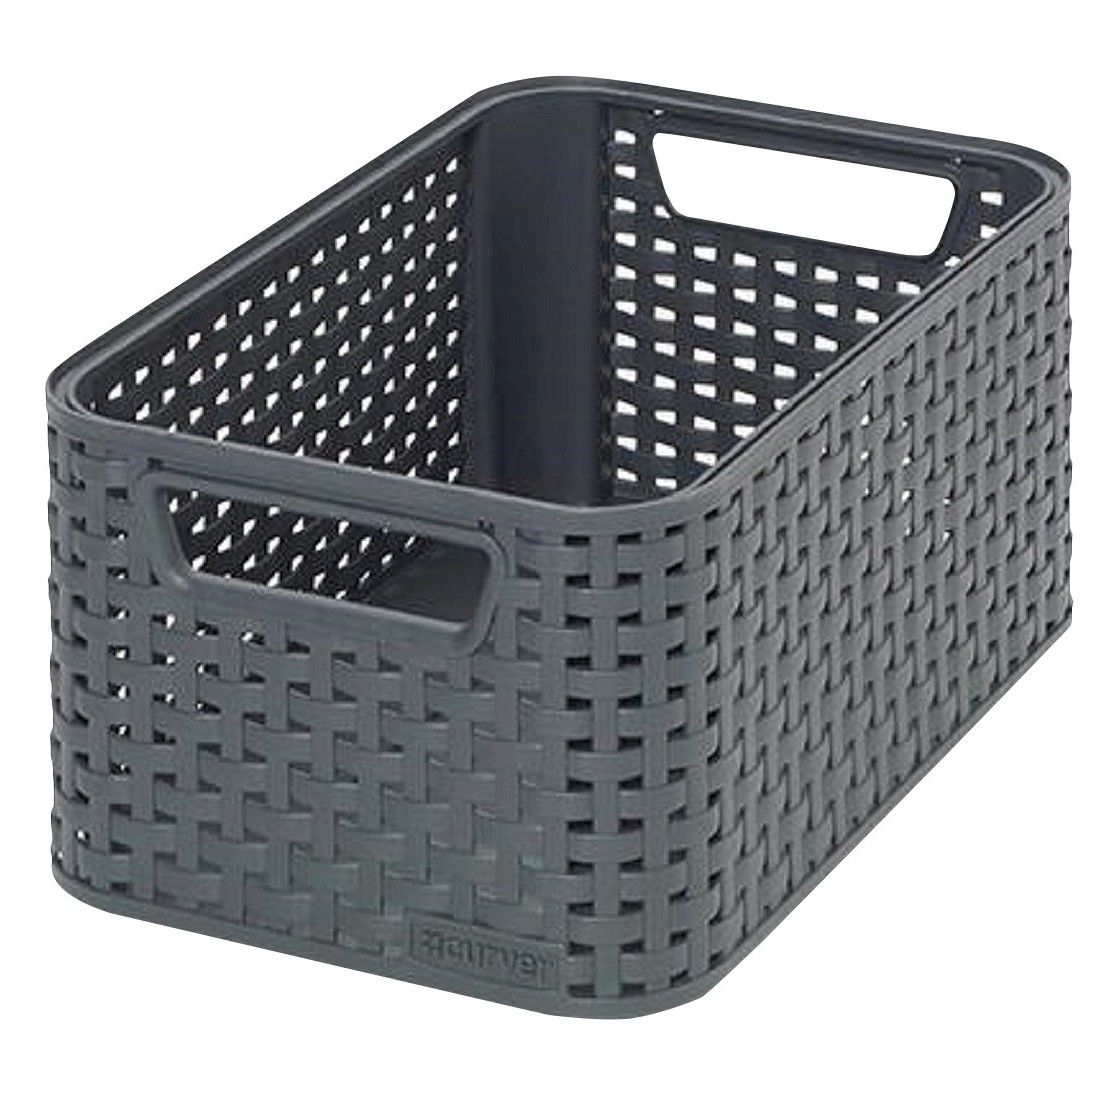 Superb Plastic Bath Basket Black Small Curver. Media StorageStorage BinsStorage ...